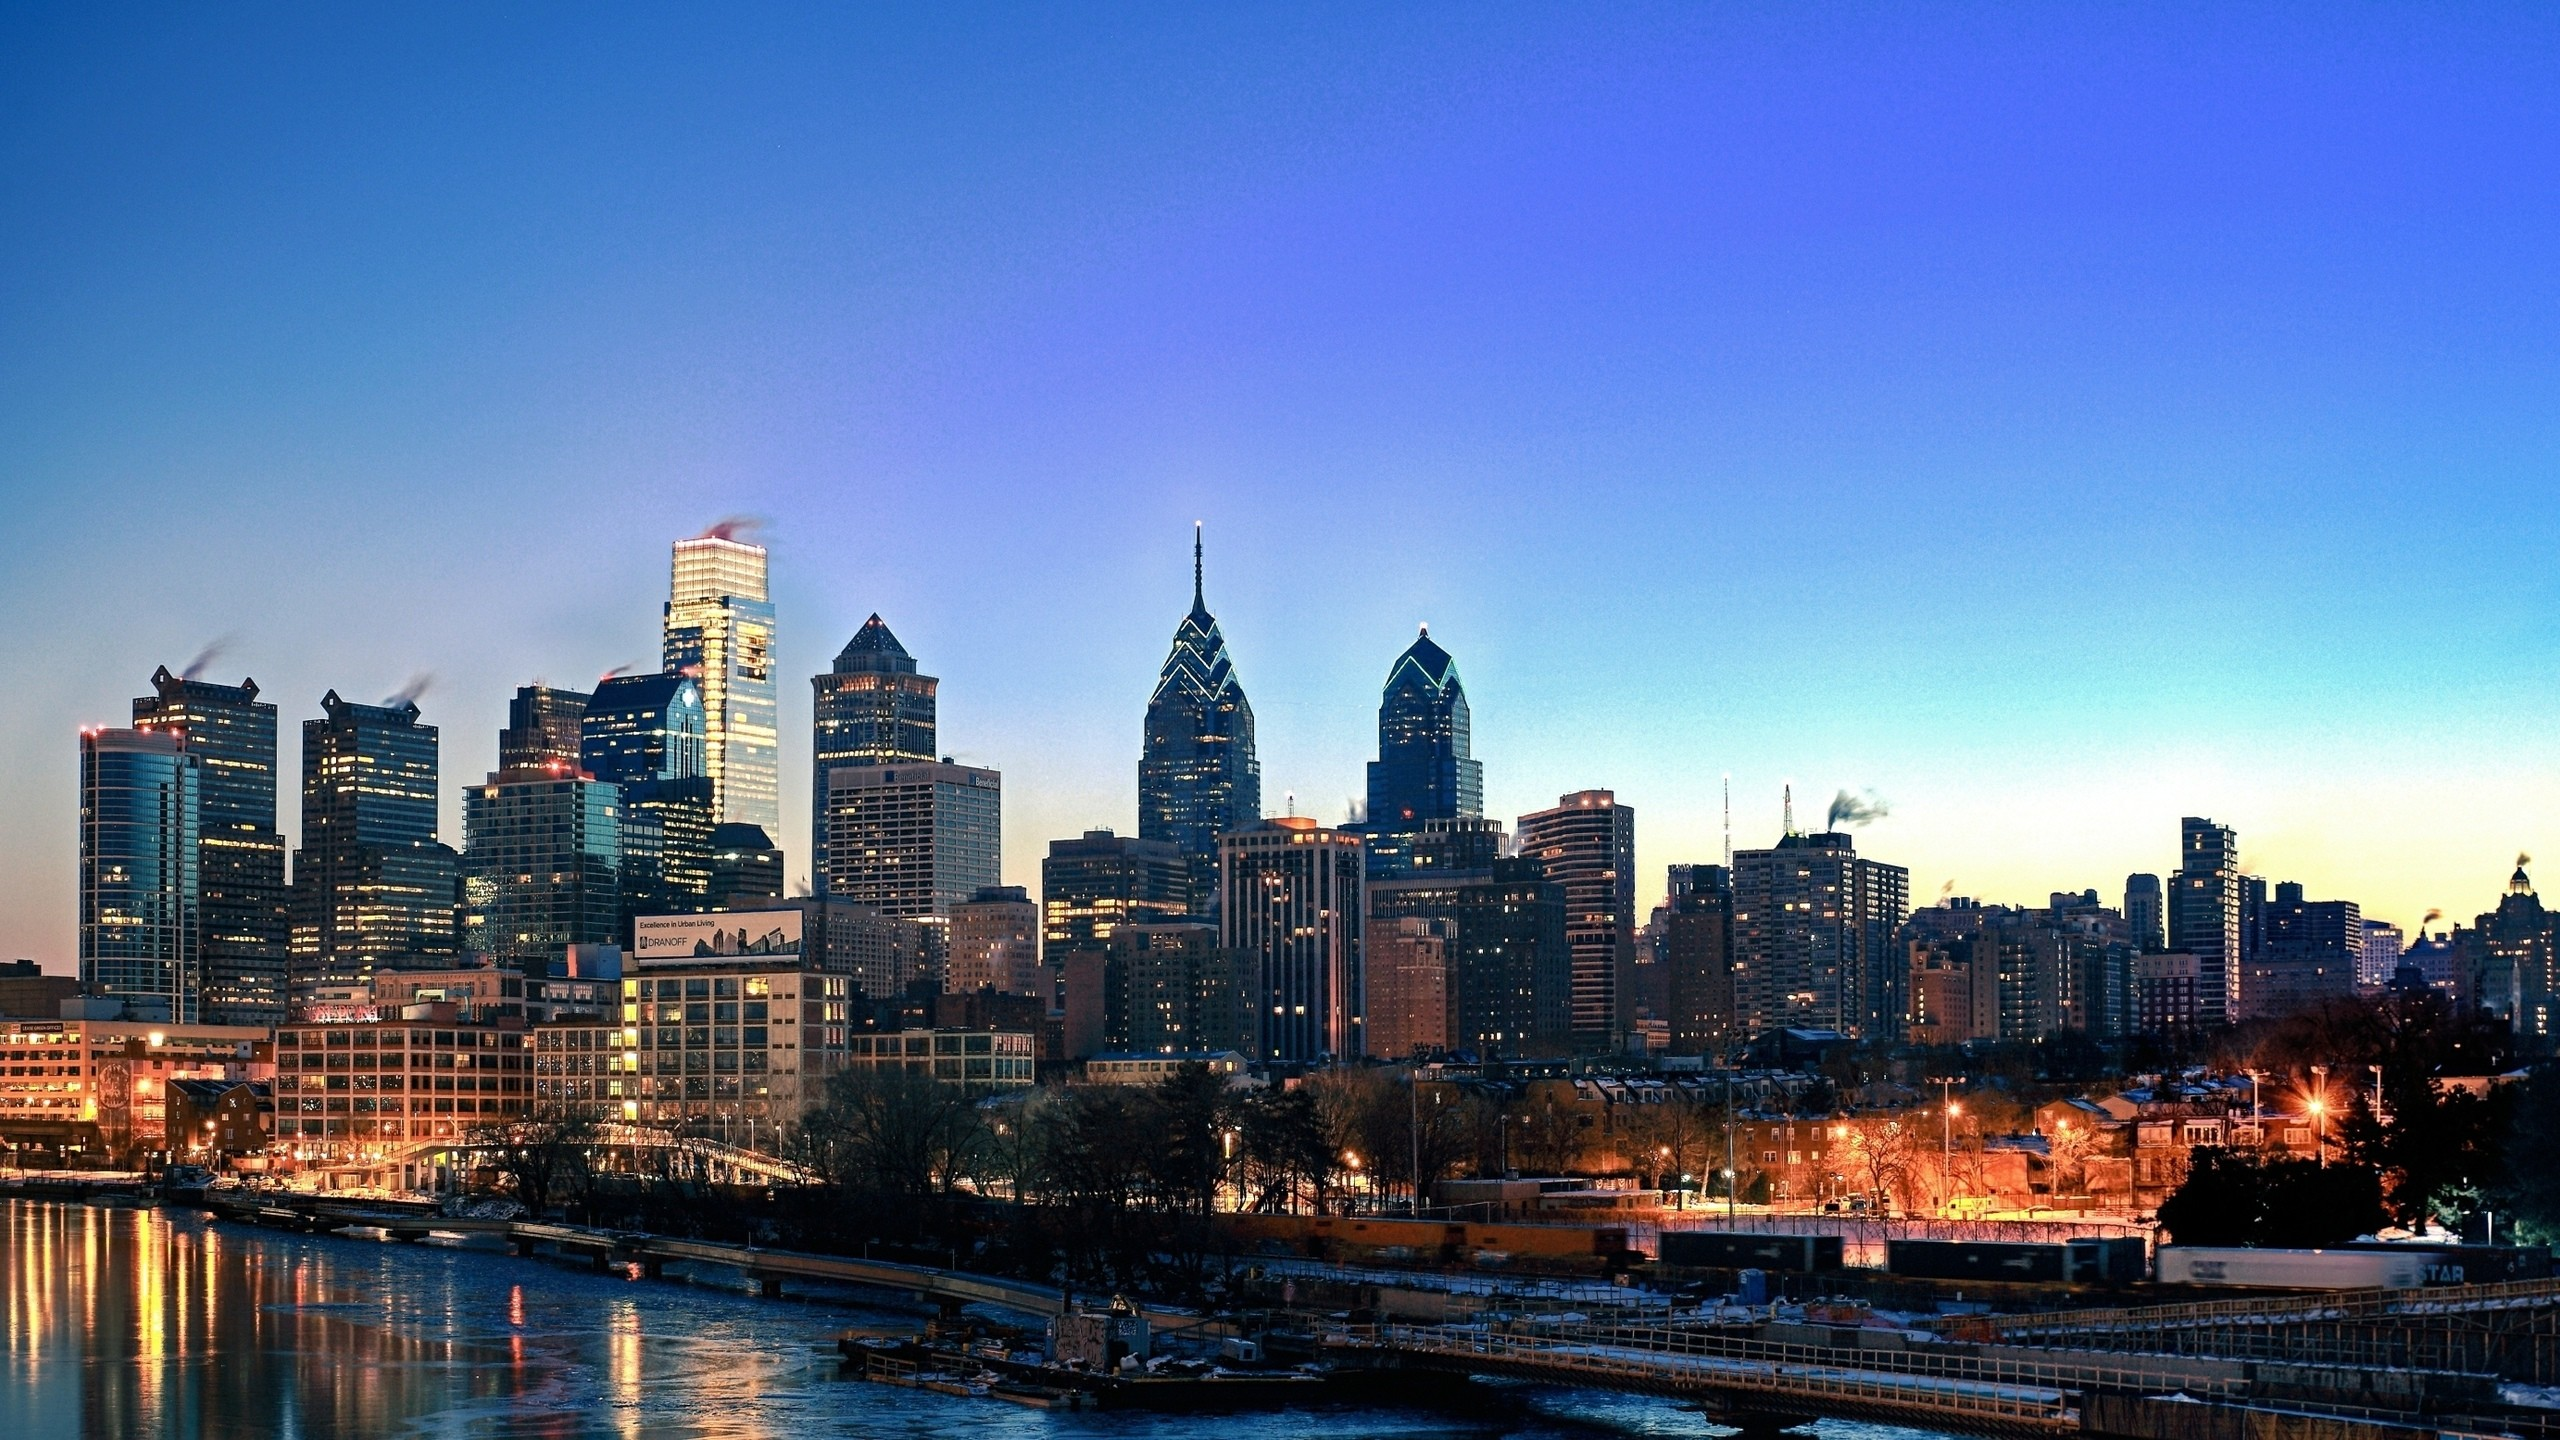 Black And White Feature Wall Wallpaper Philadelphia Skyline Wallpaper 183 ①